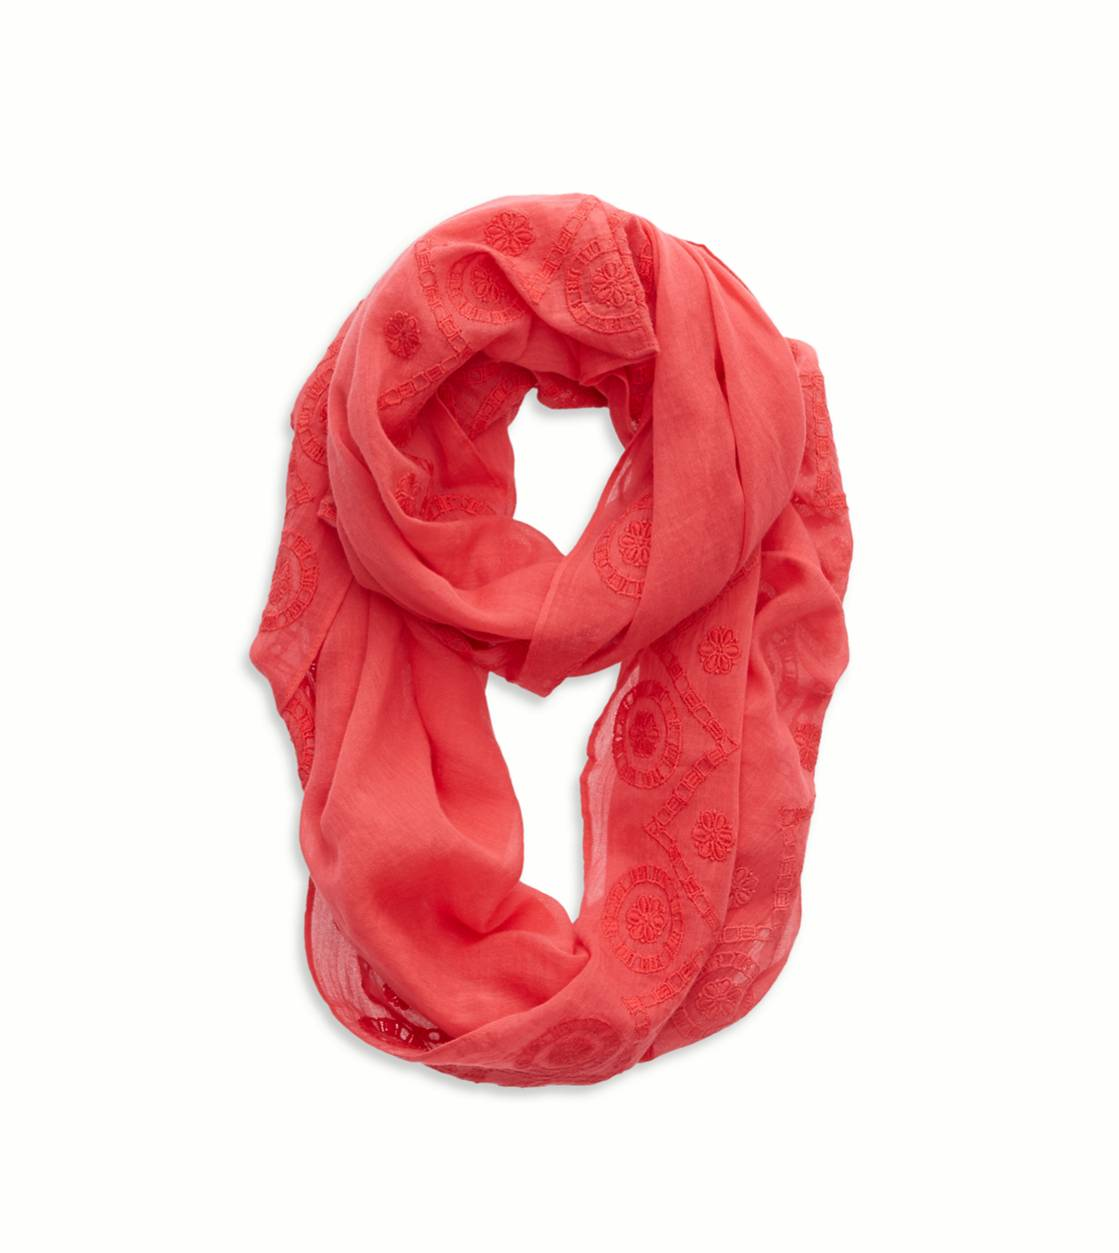 Whipped Strawberry Aerie Embroidered Loop Scarf